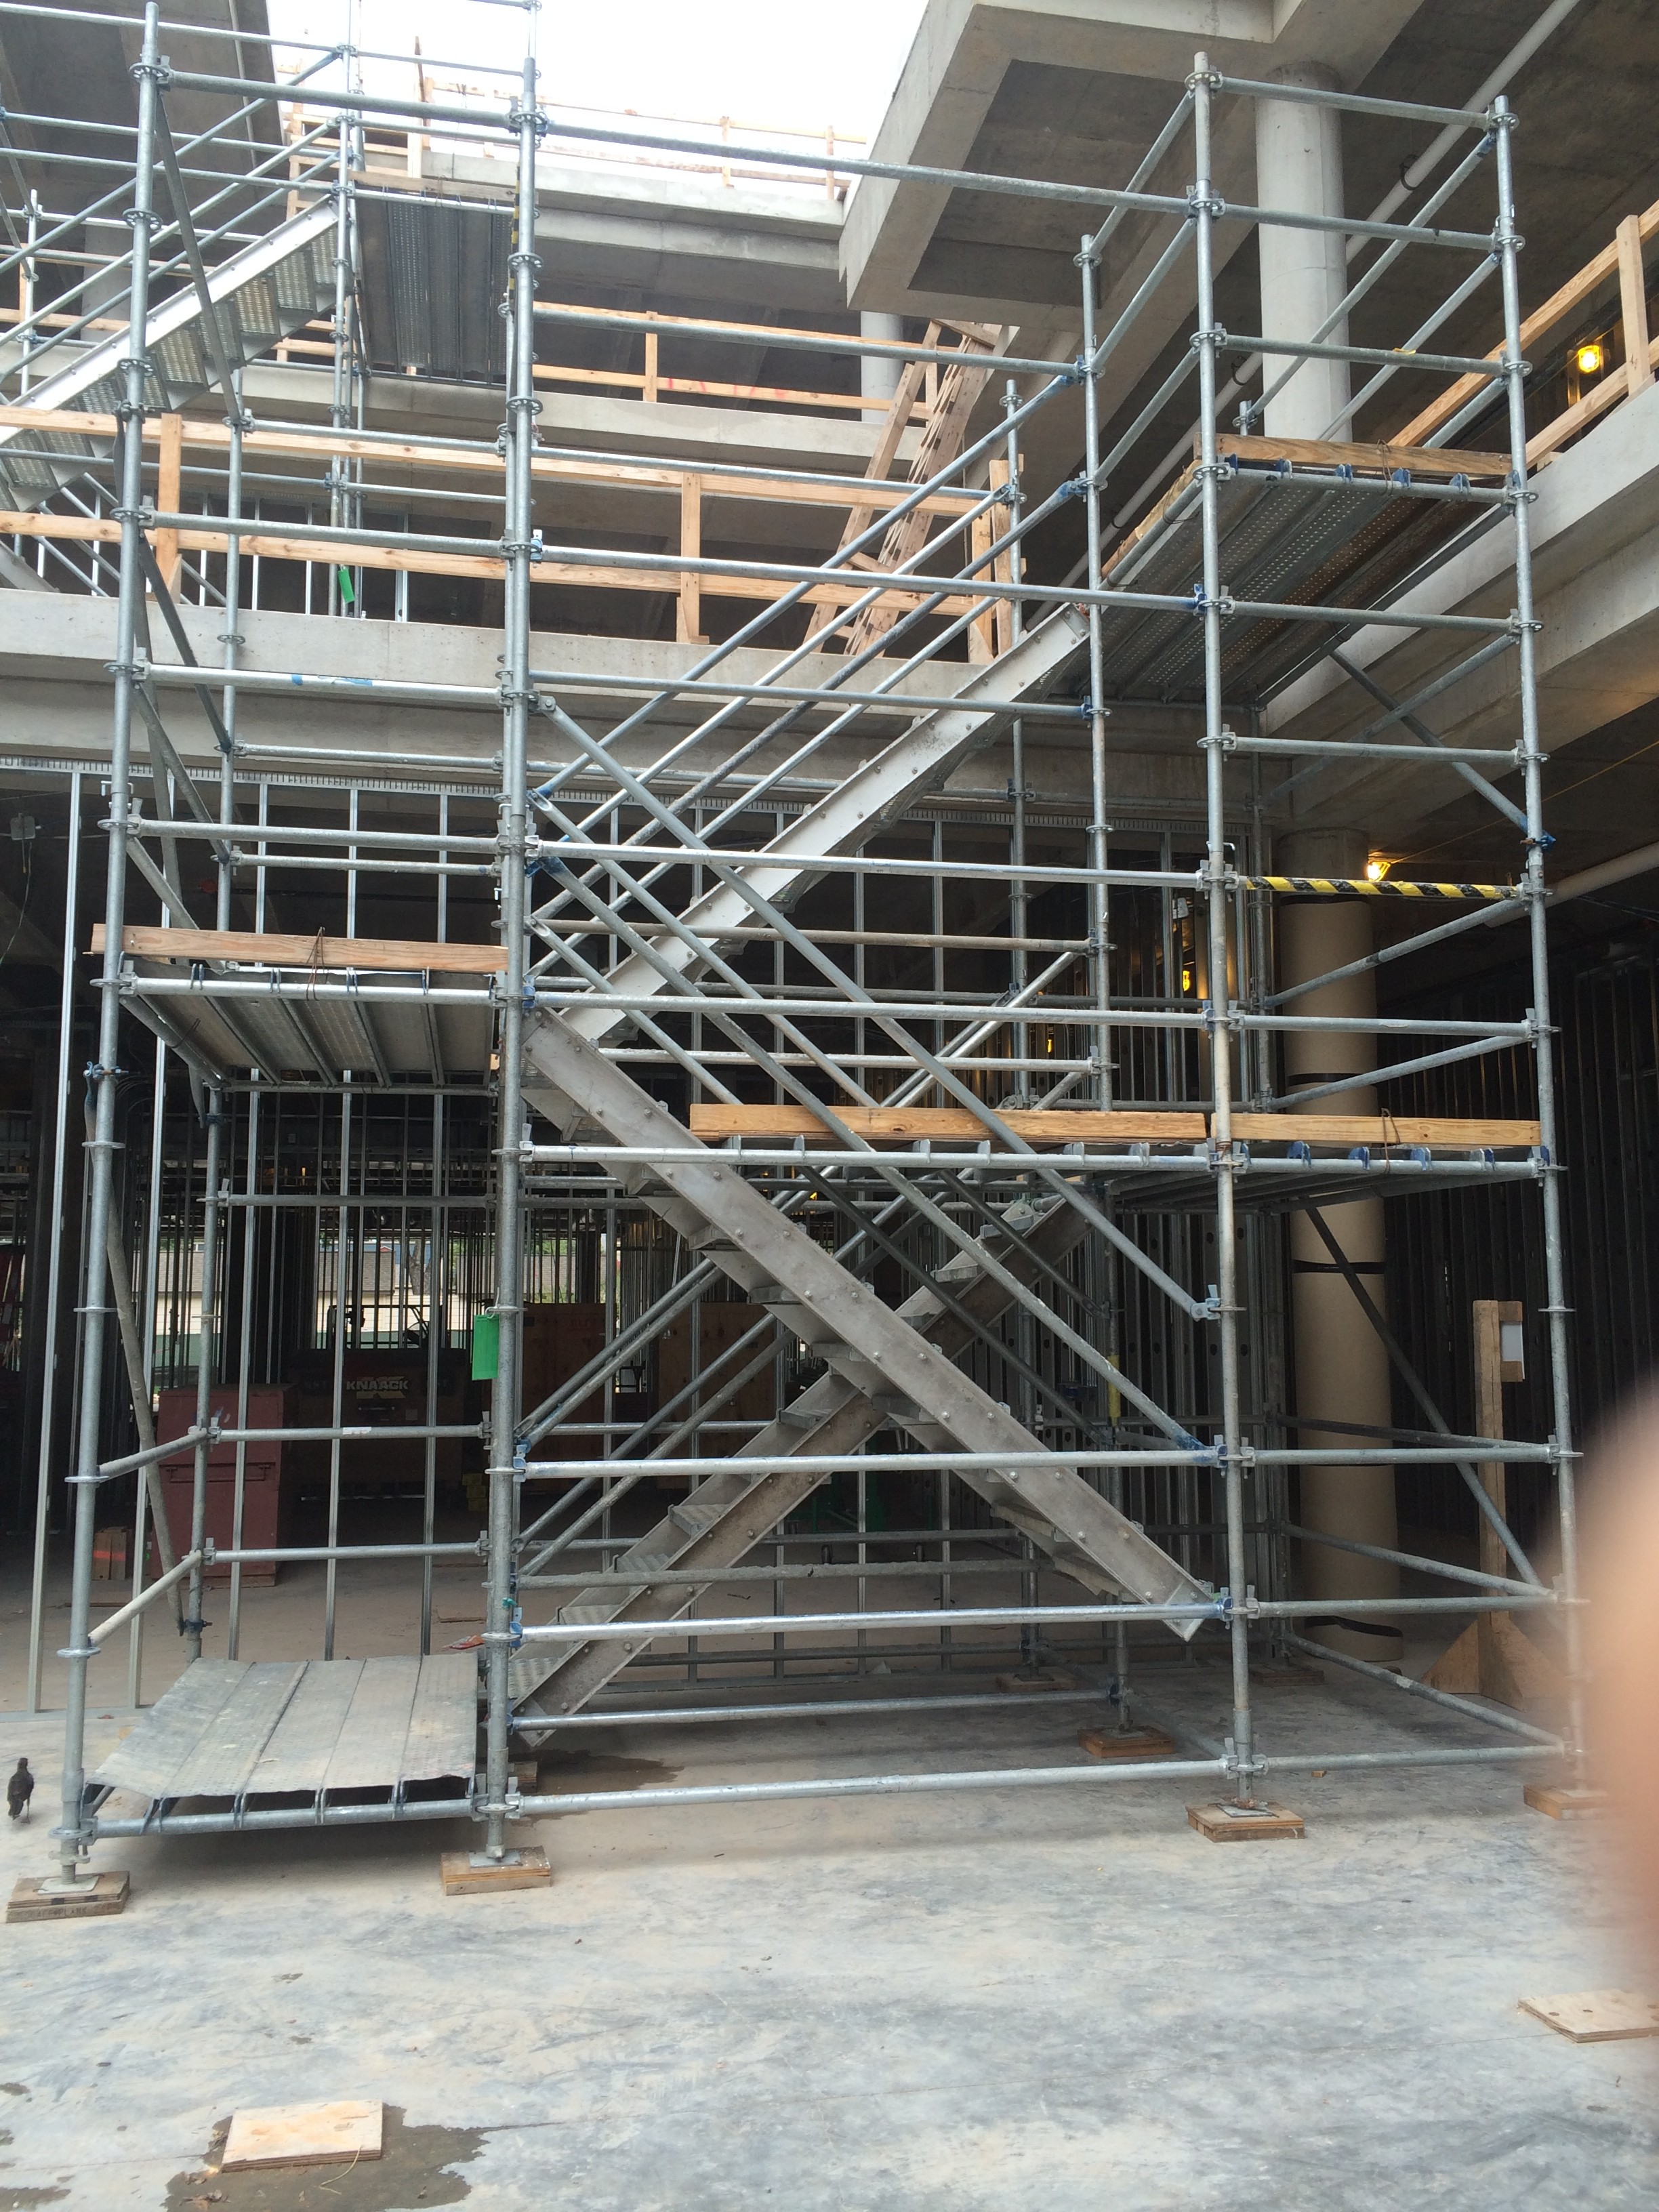 Tower Scaffold Stair Tower Stairway : System bilt rite scaffold scaffolding austin tx